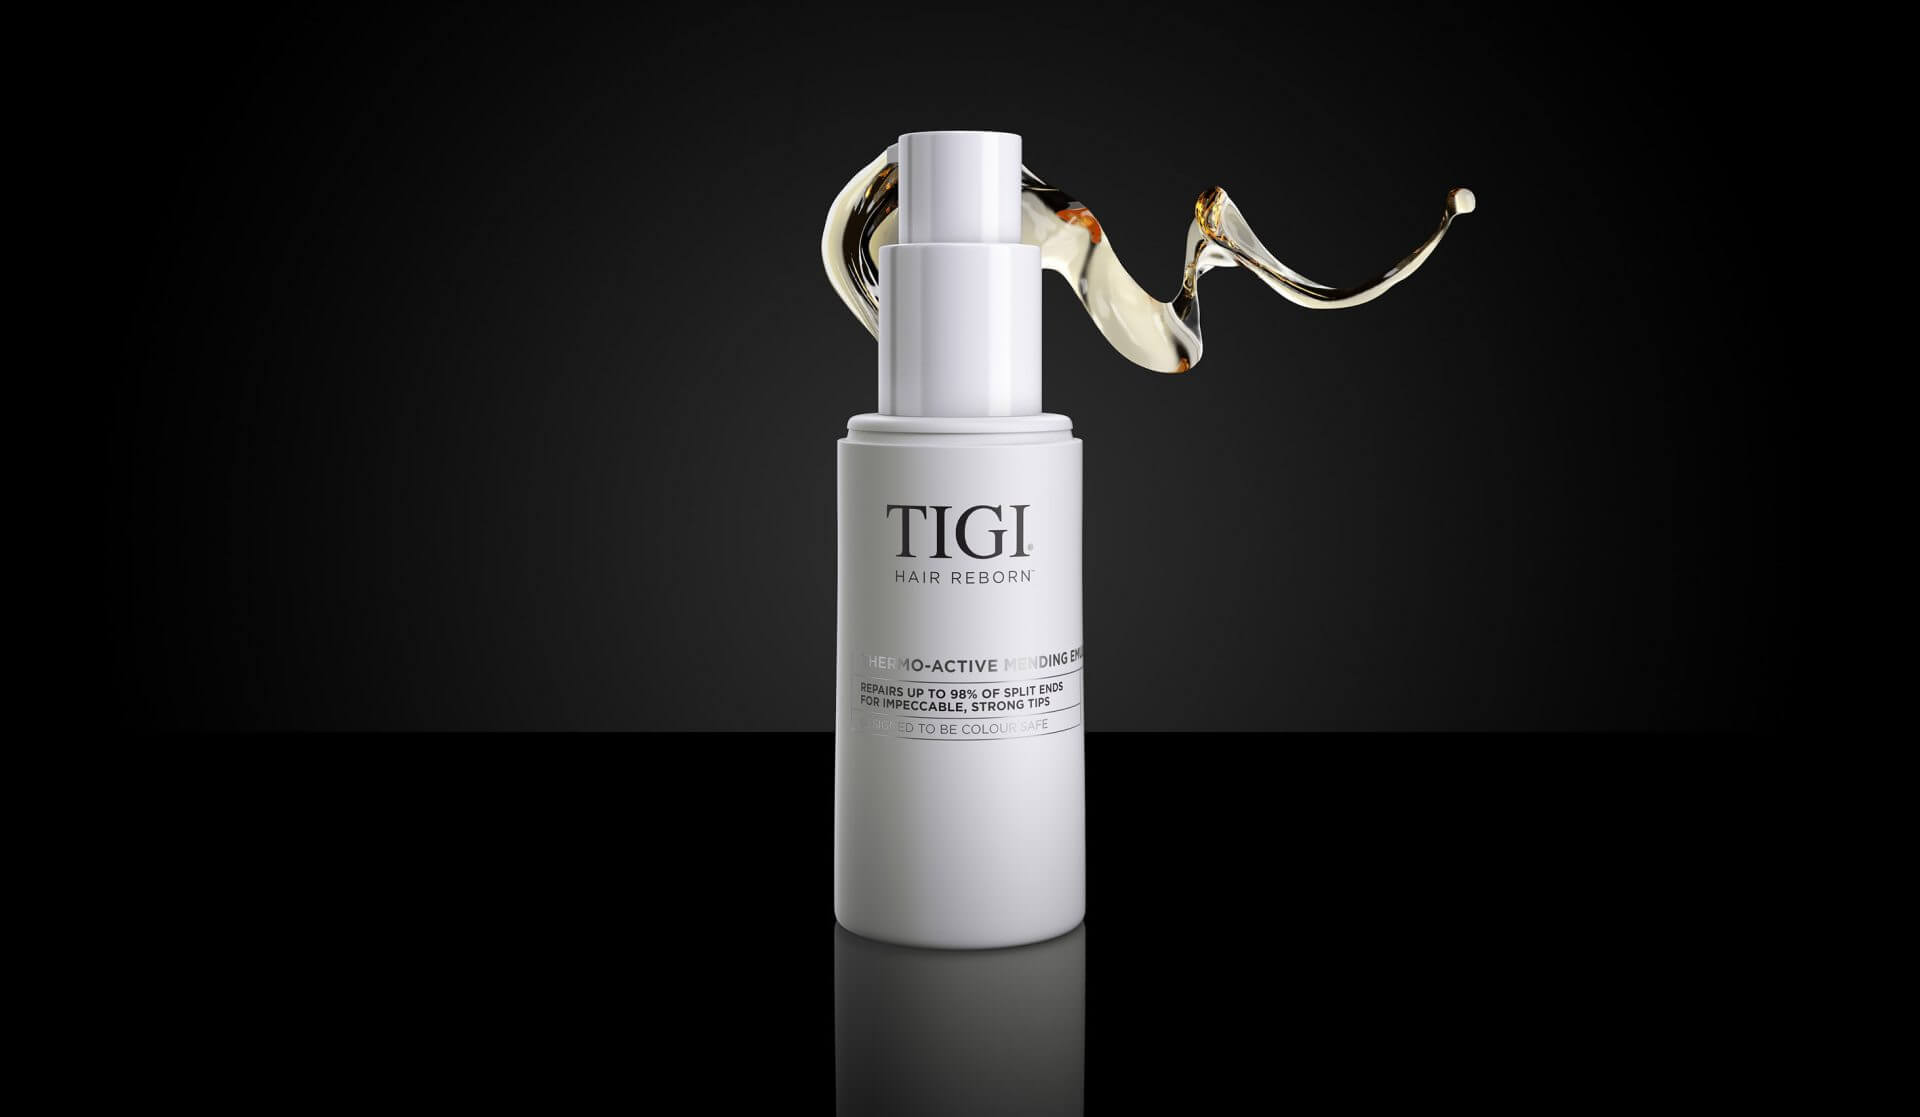 Tigi Product Shots